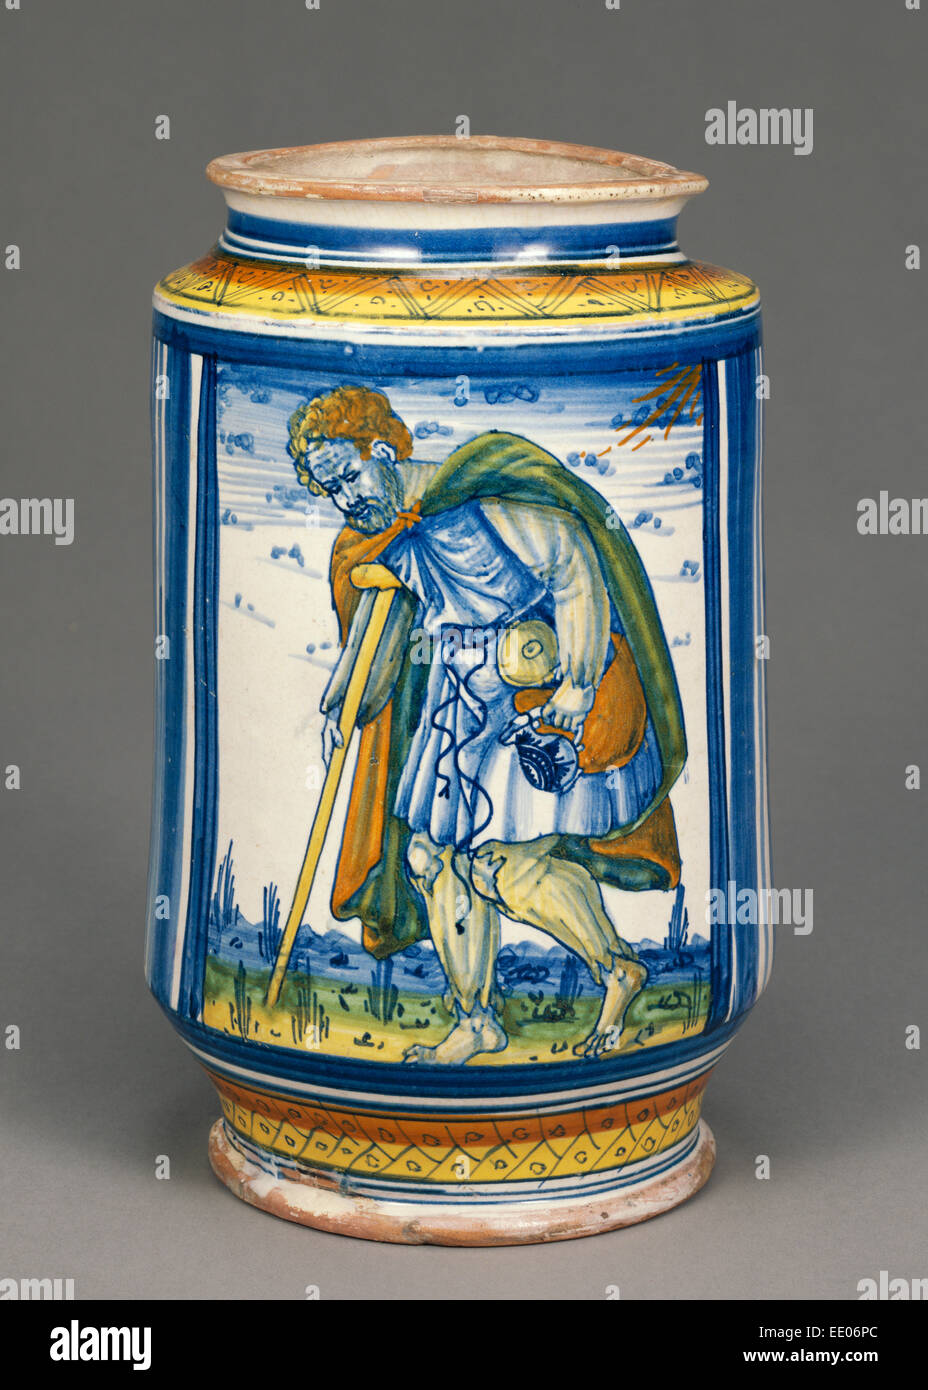 Jar with a Lame Peasant; Unknown; Faenza, Italy, Emilia-Romagna, Europe; early 16th century; Tin-glazed earthenware - Stock Image